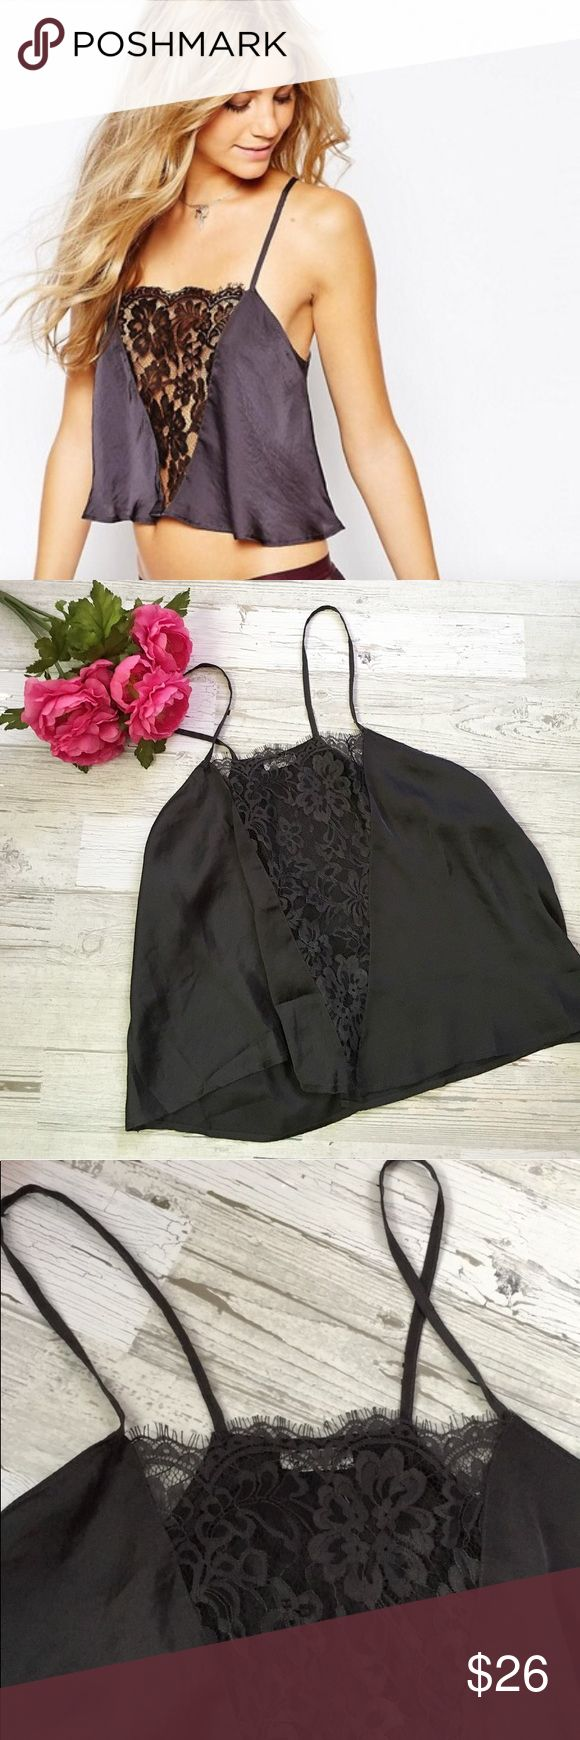 FP Gray Jones Lace Cami NWOT Gorgeous charcoal grey cami tank top by Intimately Free People. Cropped length. Pretty sheer lace panel in front. Split open back. Straps are not adjustable. Really soft and comfy to wear. Great for layering! 1st and last pics from FP website to show fit and color. Bundle with other FP for a discount! Size large but would fit S-L due to flowy fit.  Condition: Brand new, never worn  🚫NO TRADES🚫 ❌No Try Ons❌ Please ask any questions prior to purchasing. All sales…